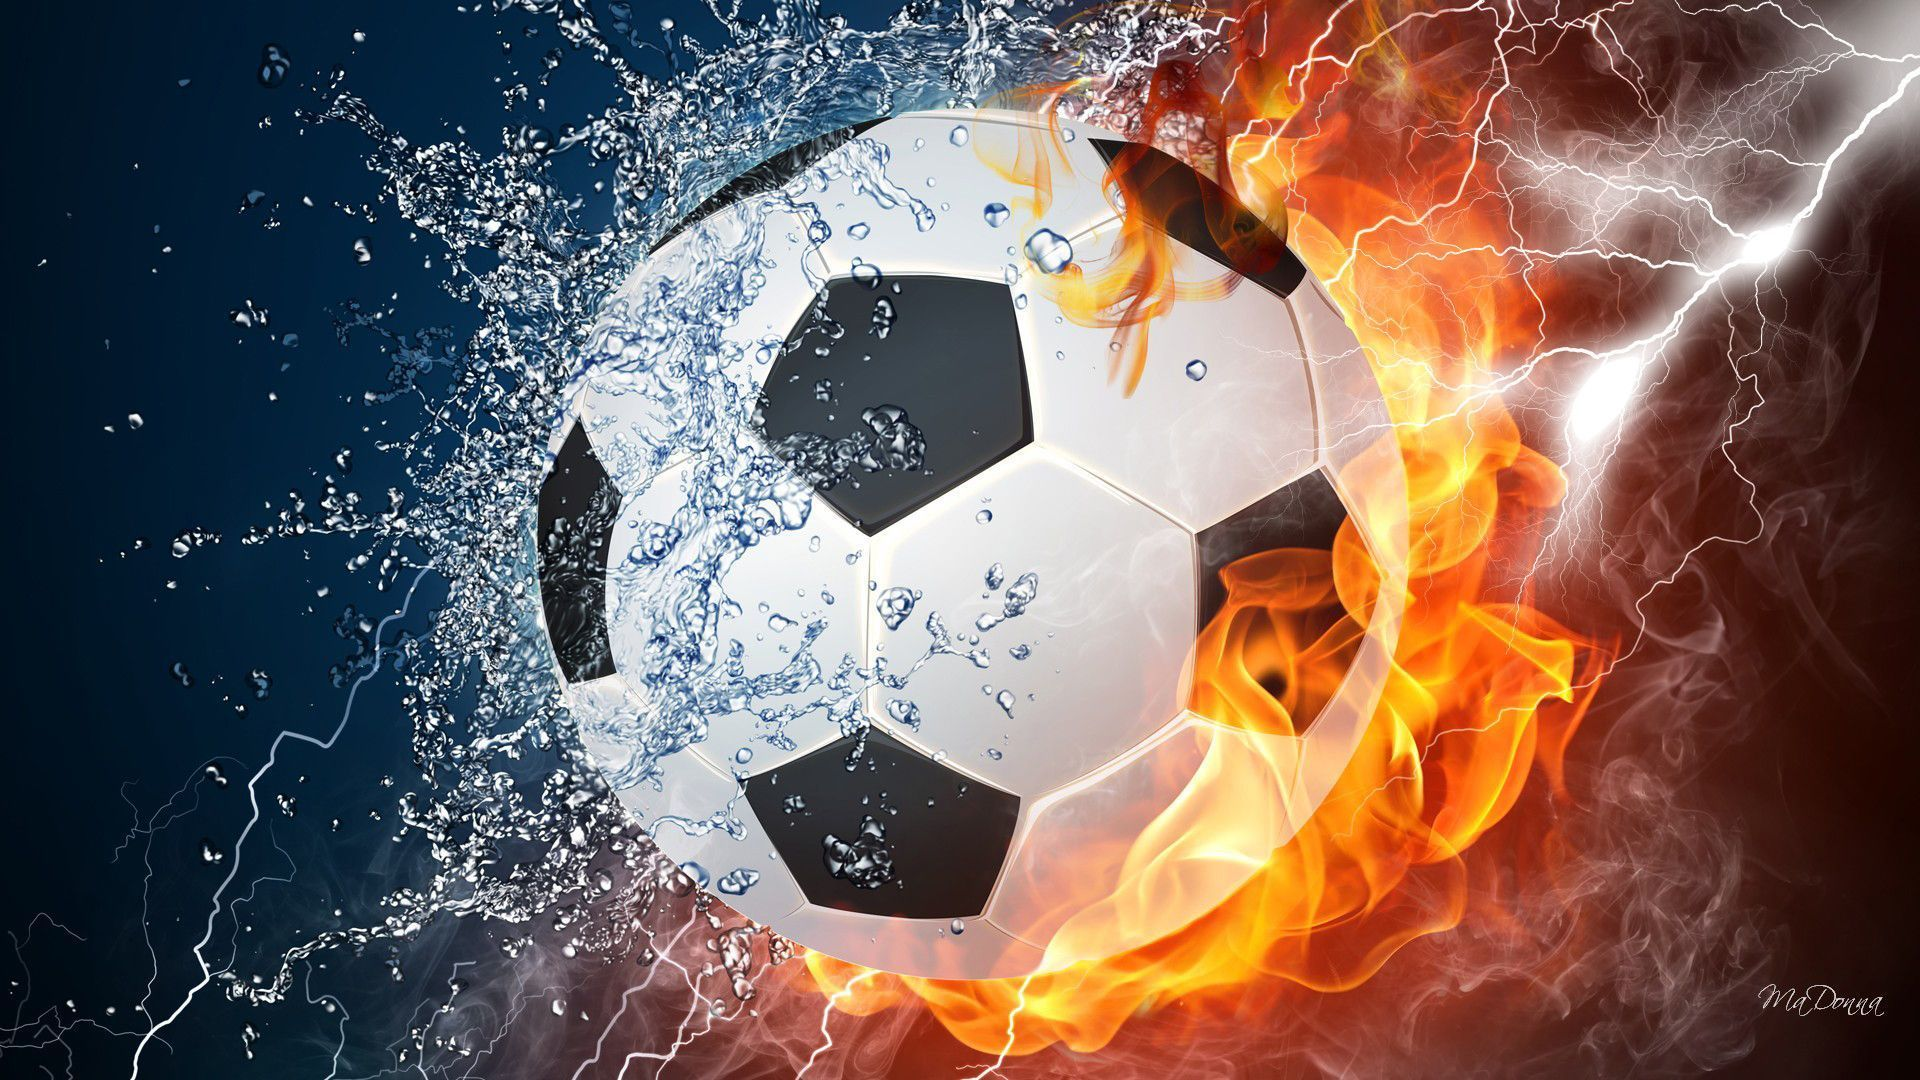 Undefined Water Fire Wallpapers 35 Wallpapers Adorable Wallpapers Soccer Ball Soccer Balls Soccer